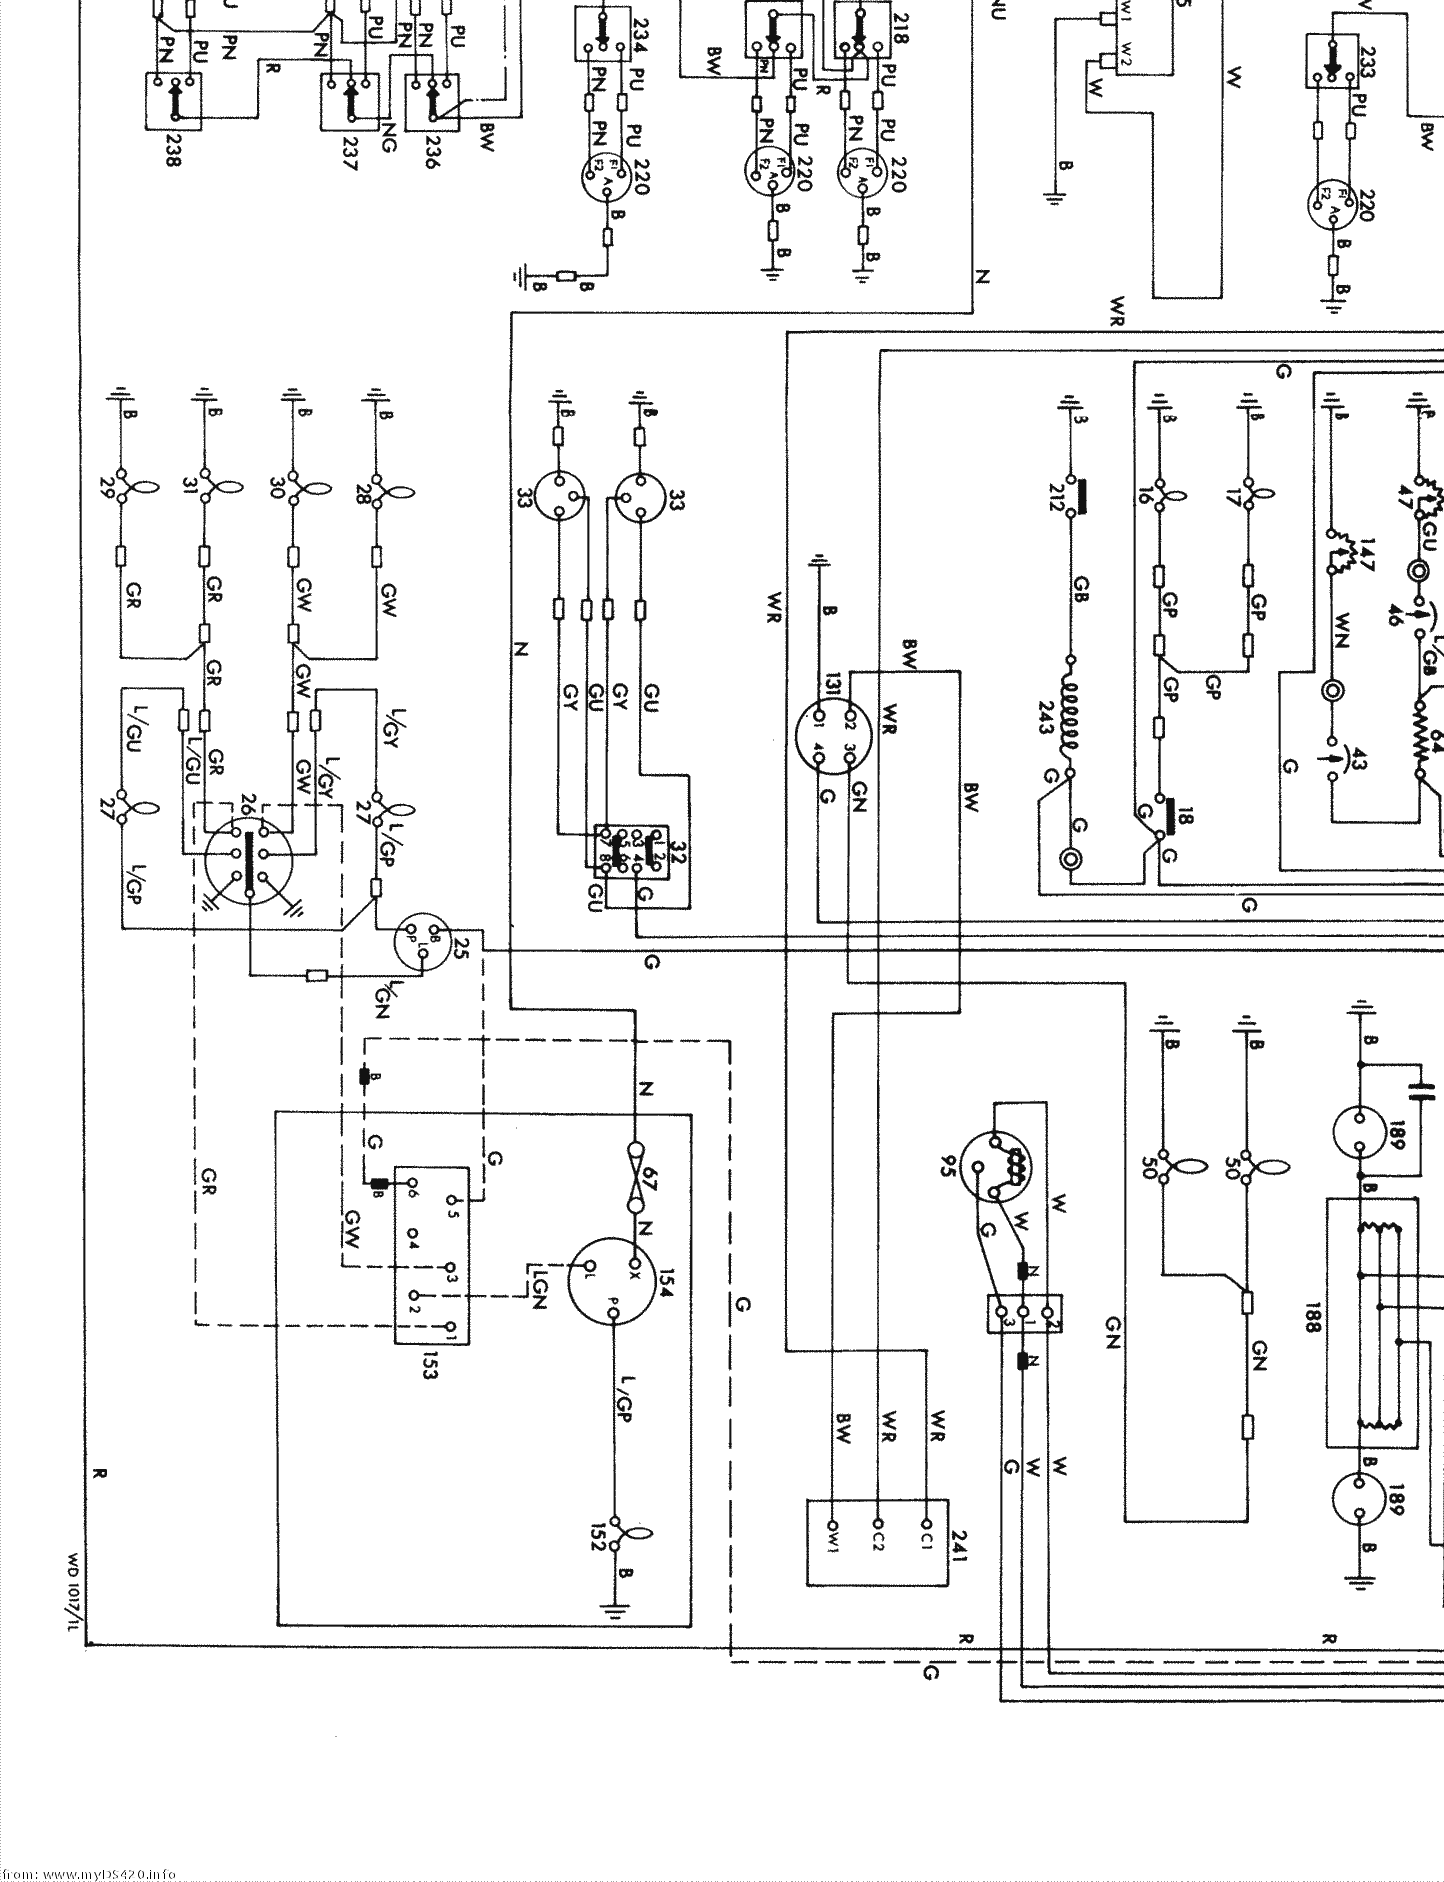 hight resolution of wiring diagram mr